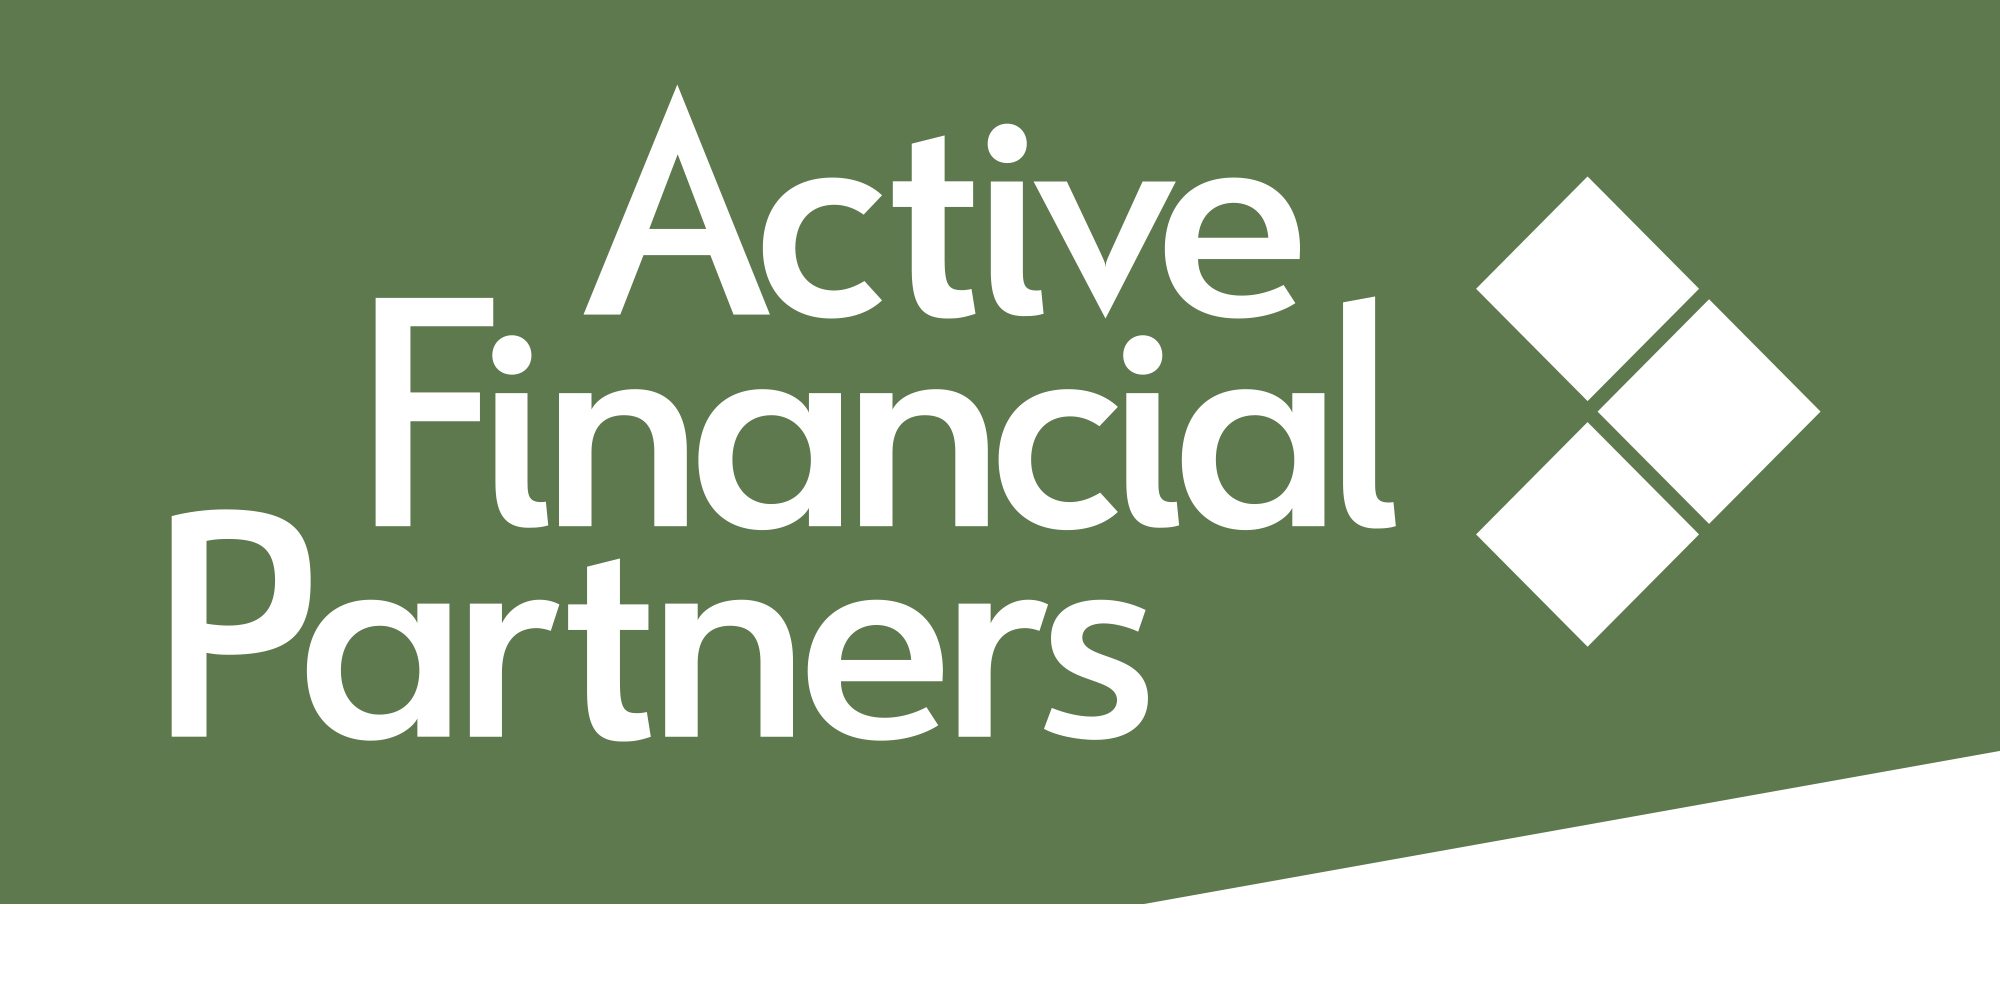 Active Financial Partners Ltd